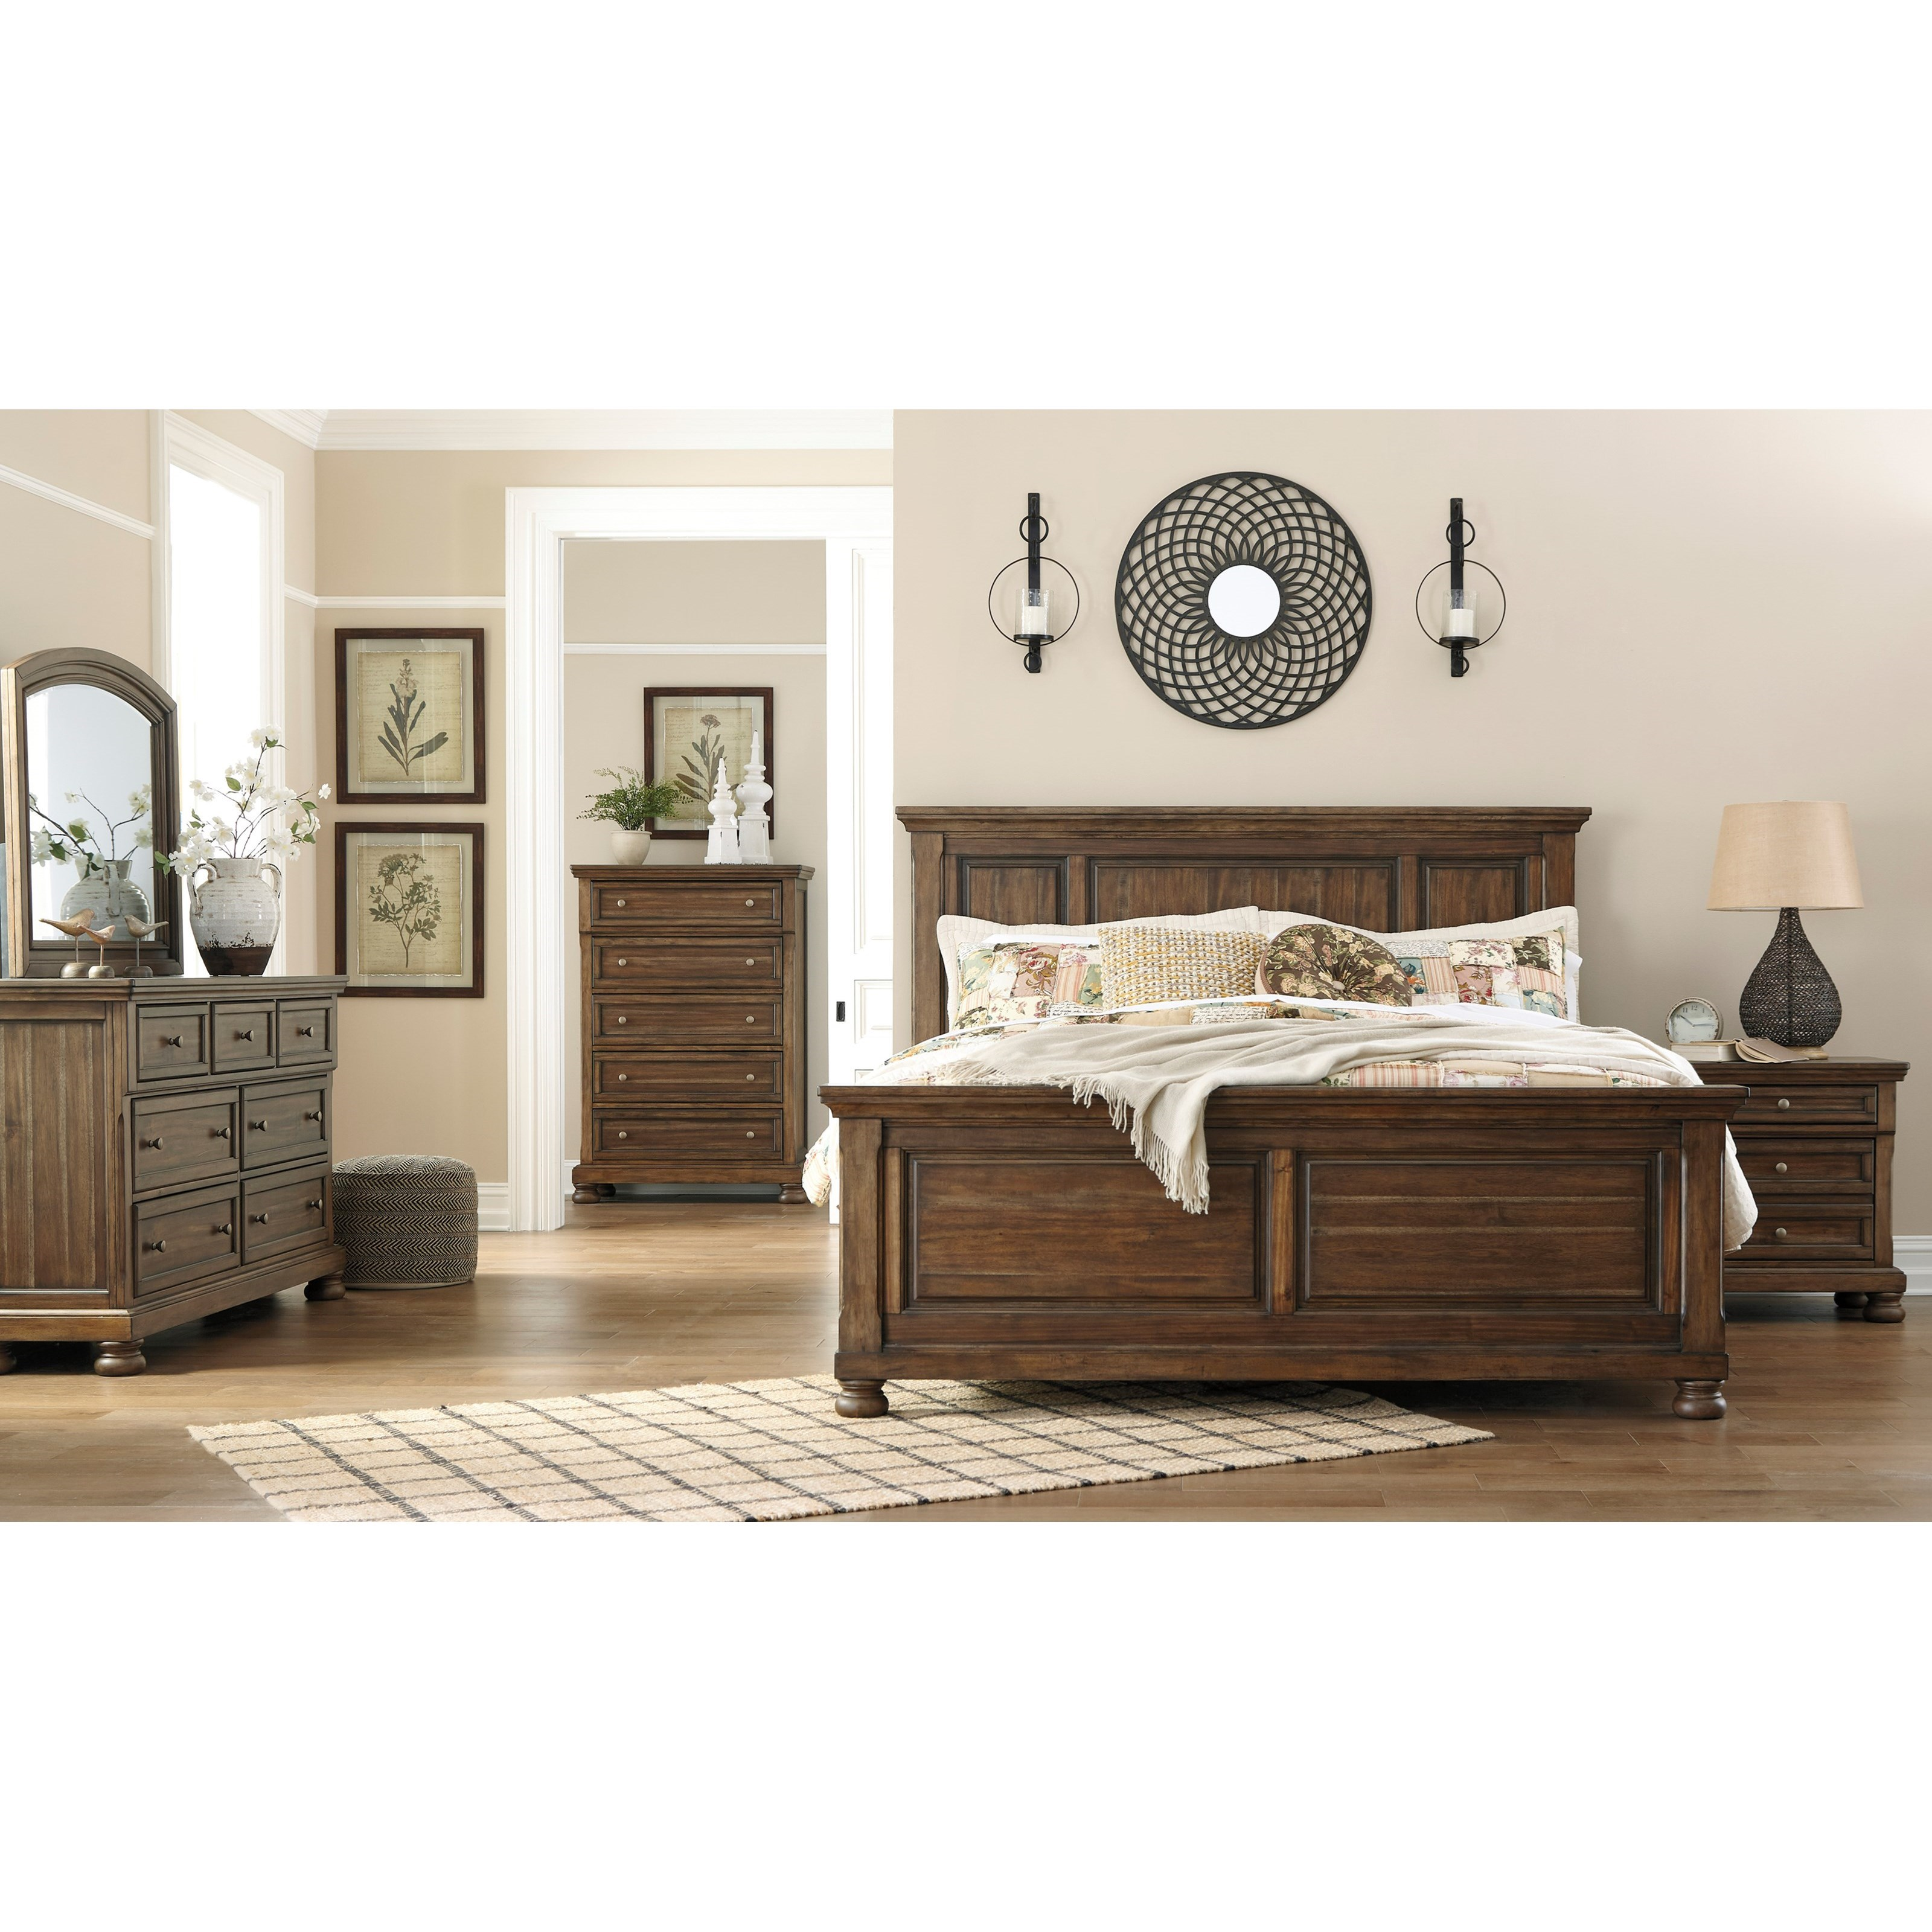 Flynnter King Bedroom Group by Signature Design by Ashley at Beds N Stuff